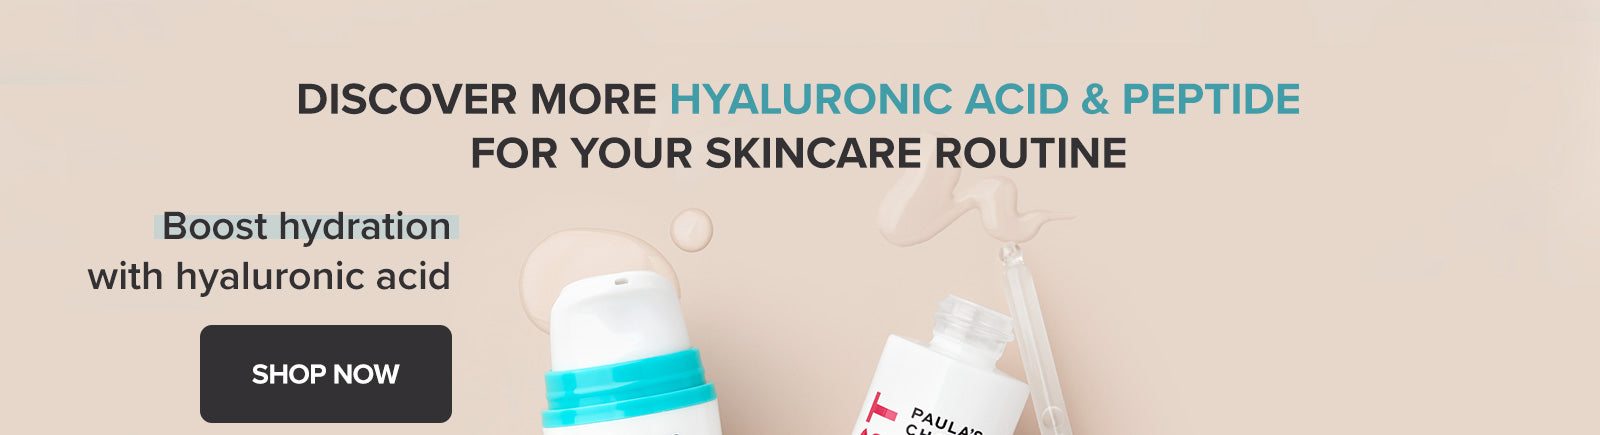 Discover Our Hyaluronic Acid Collection